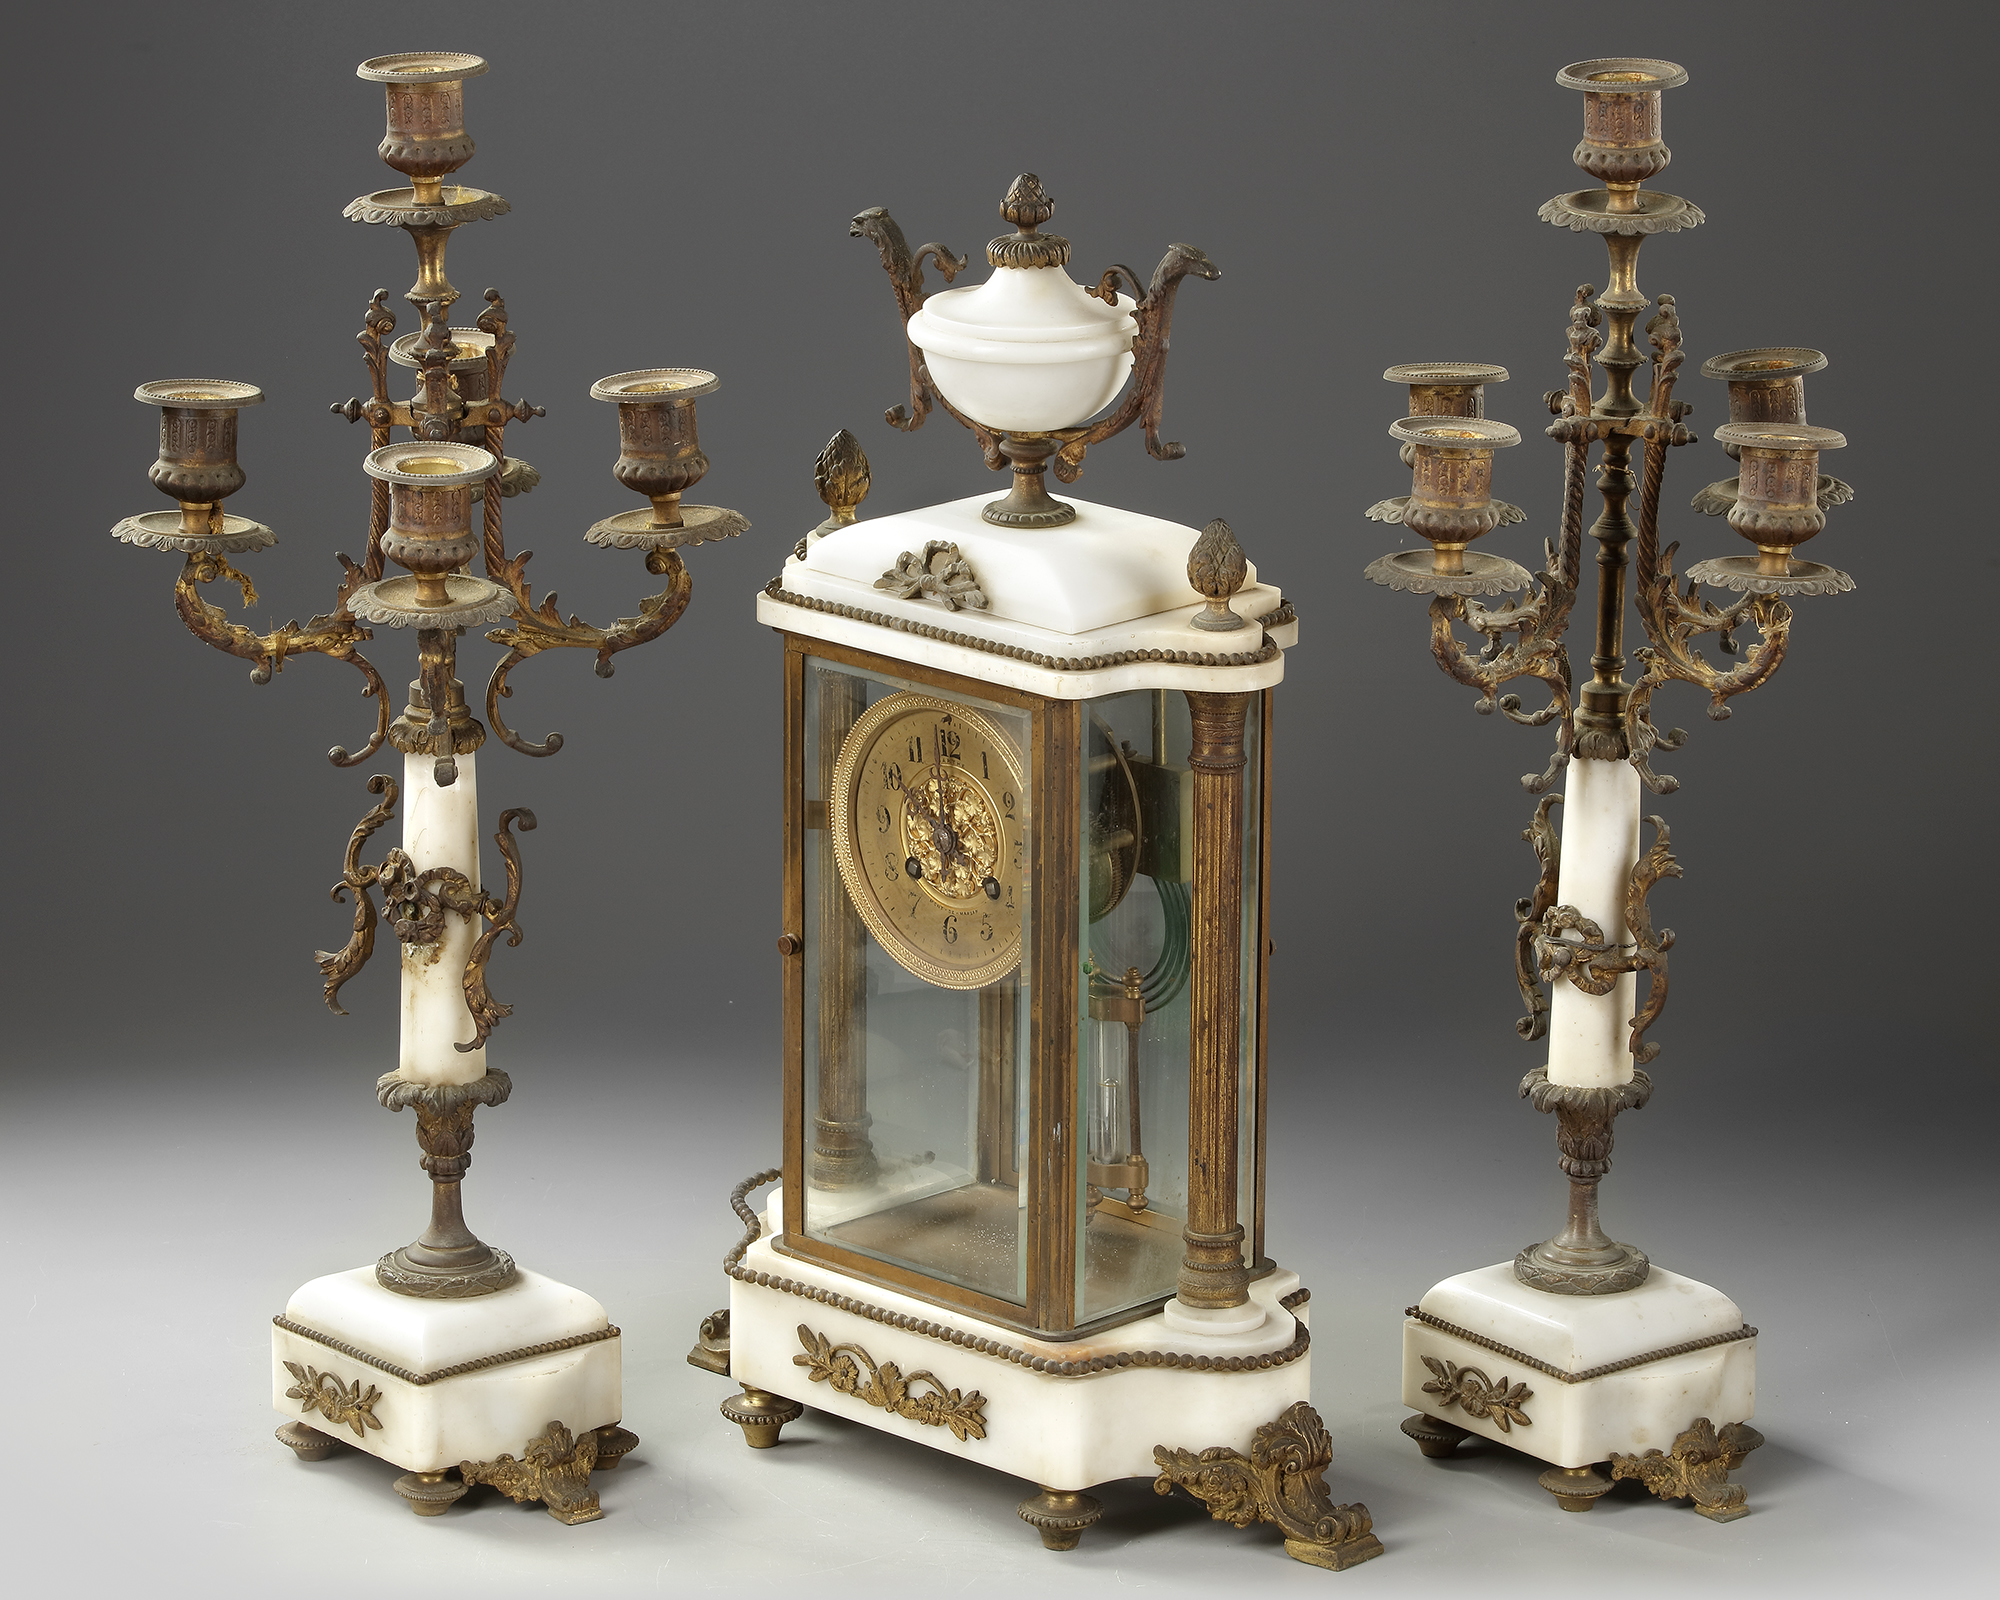 A FRENCH CLOCK SET, LATE 19TH CENTURY - Image 5 of 5